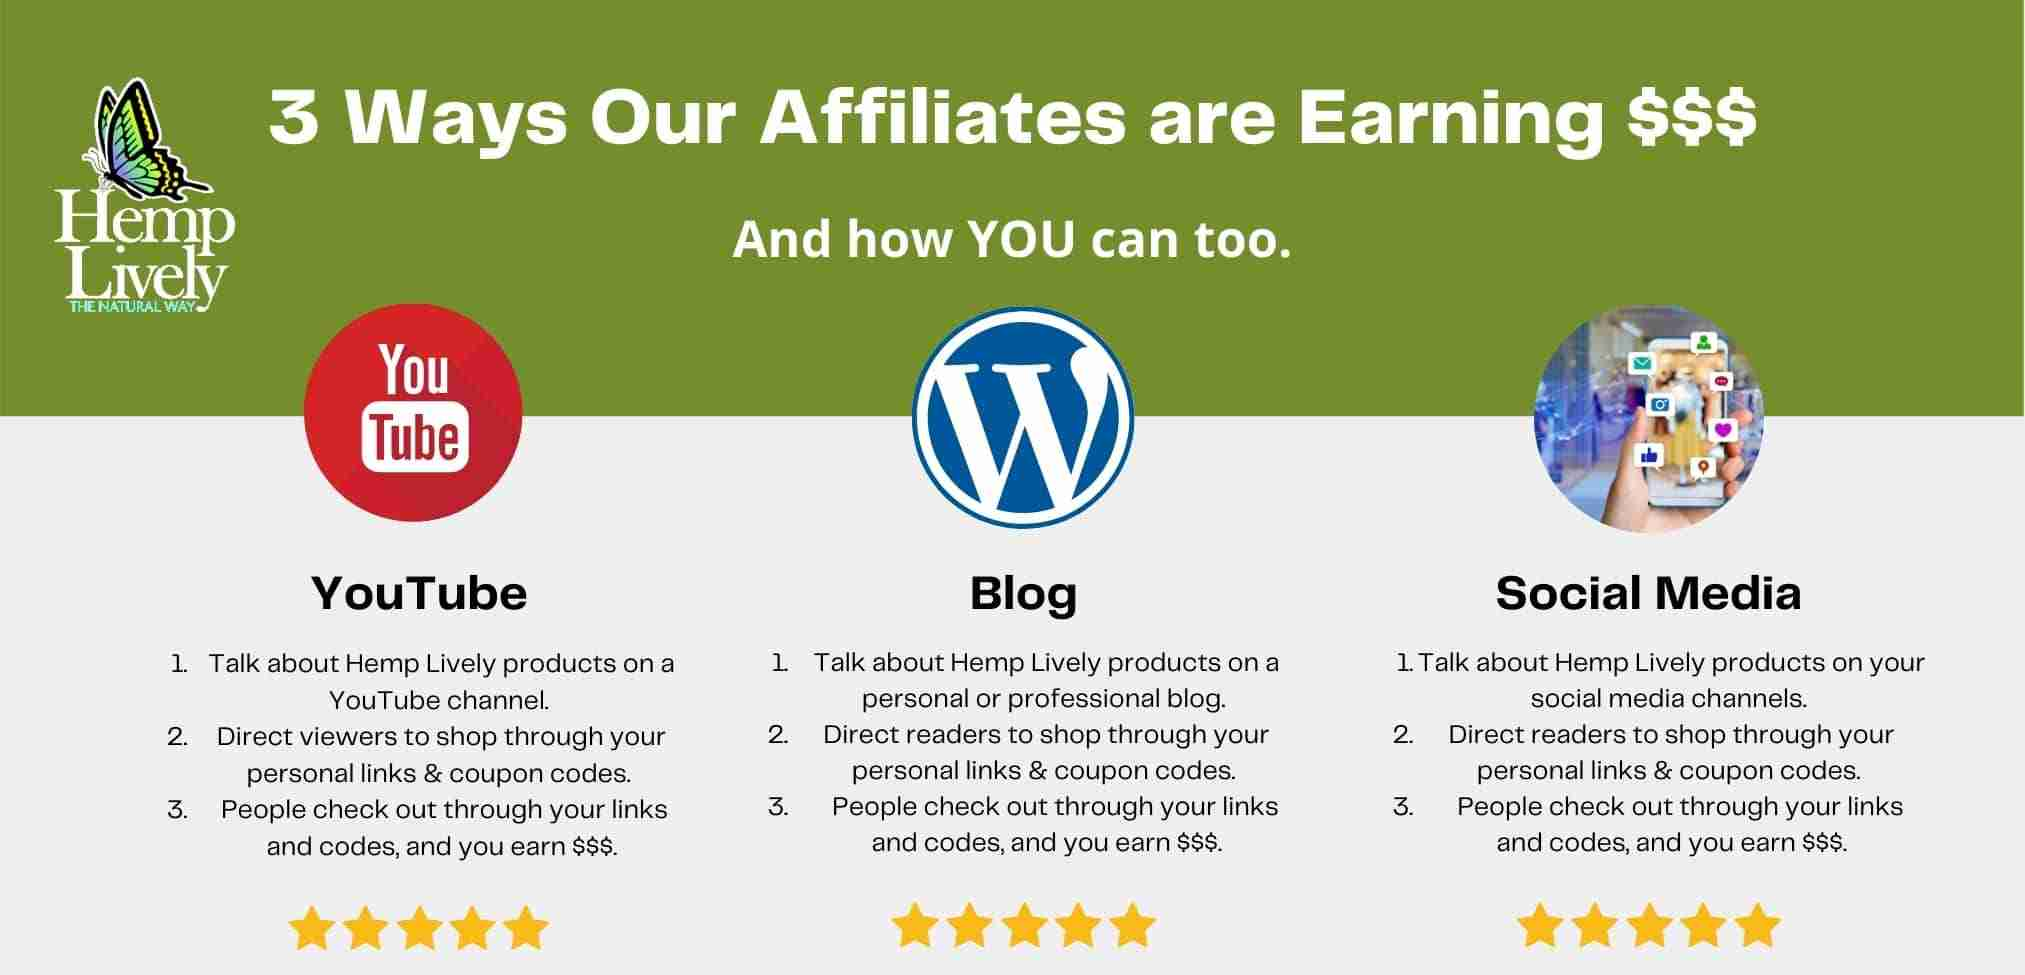 How Hemp Lively Affiliate are Earning Money and You Can Too